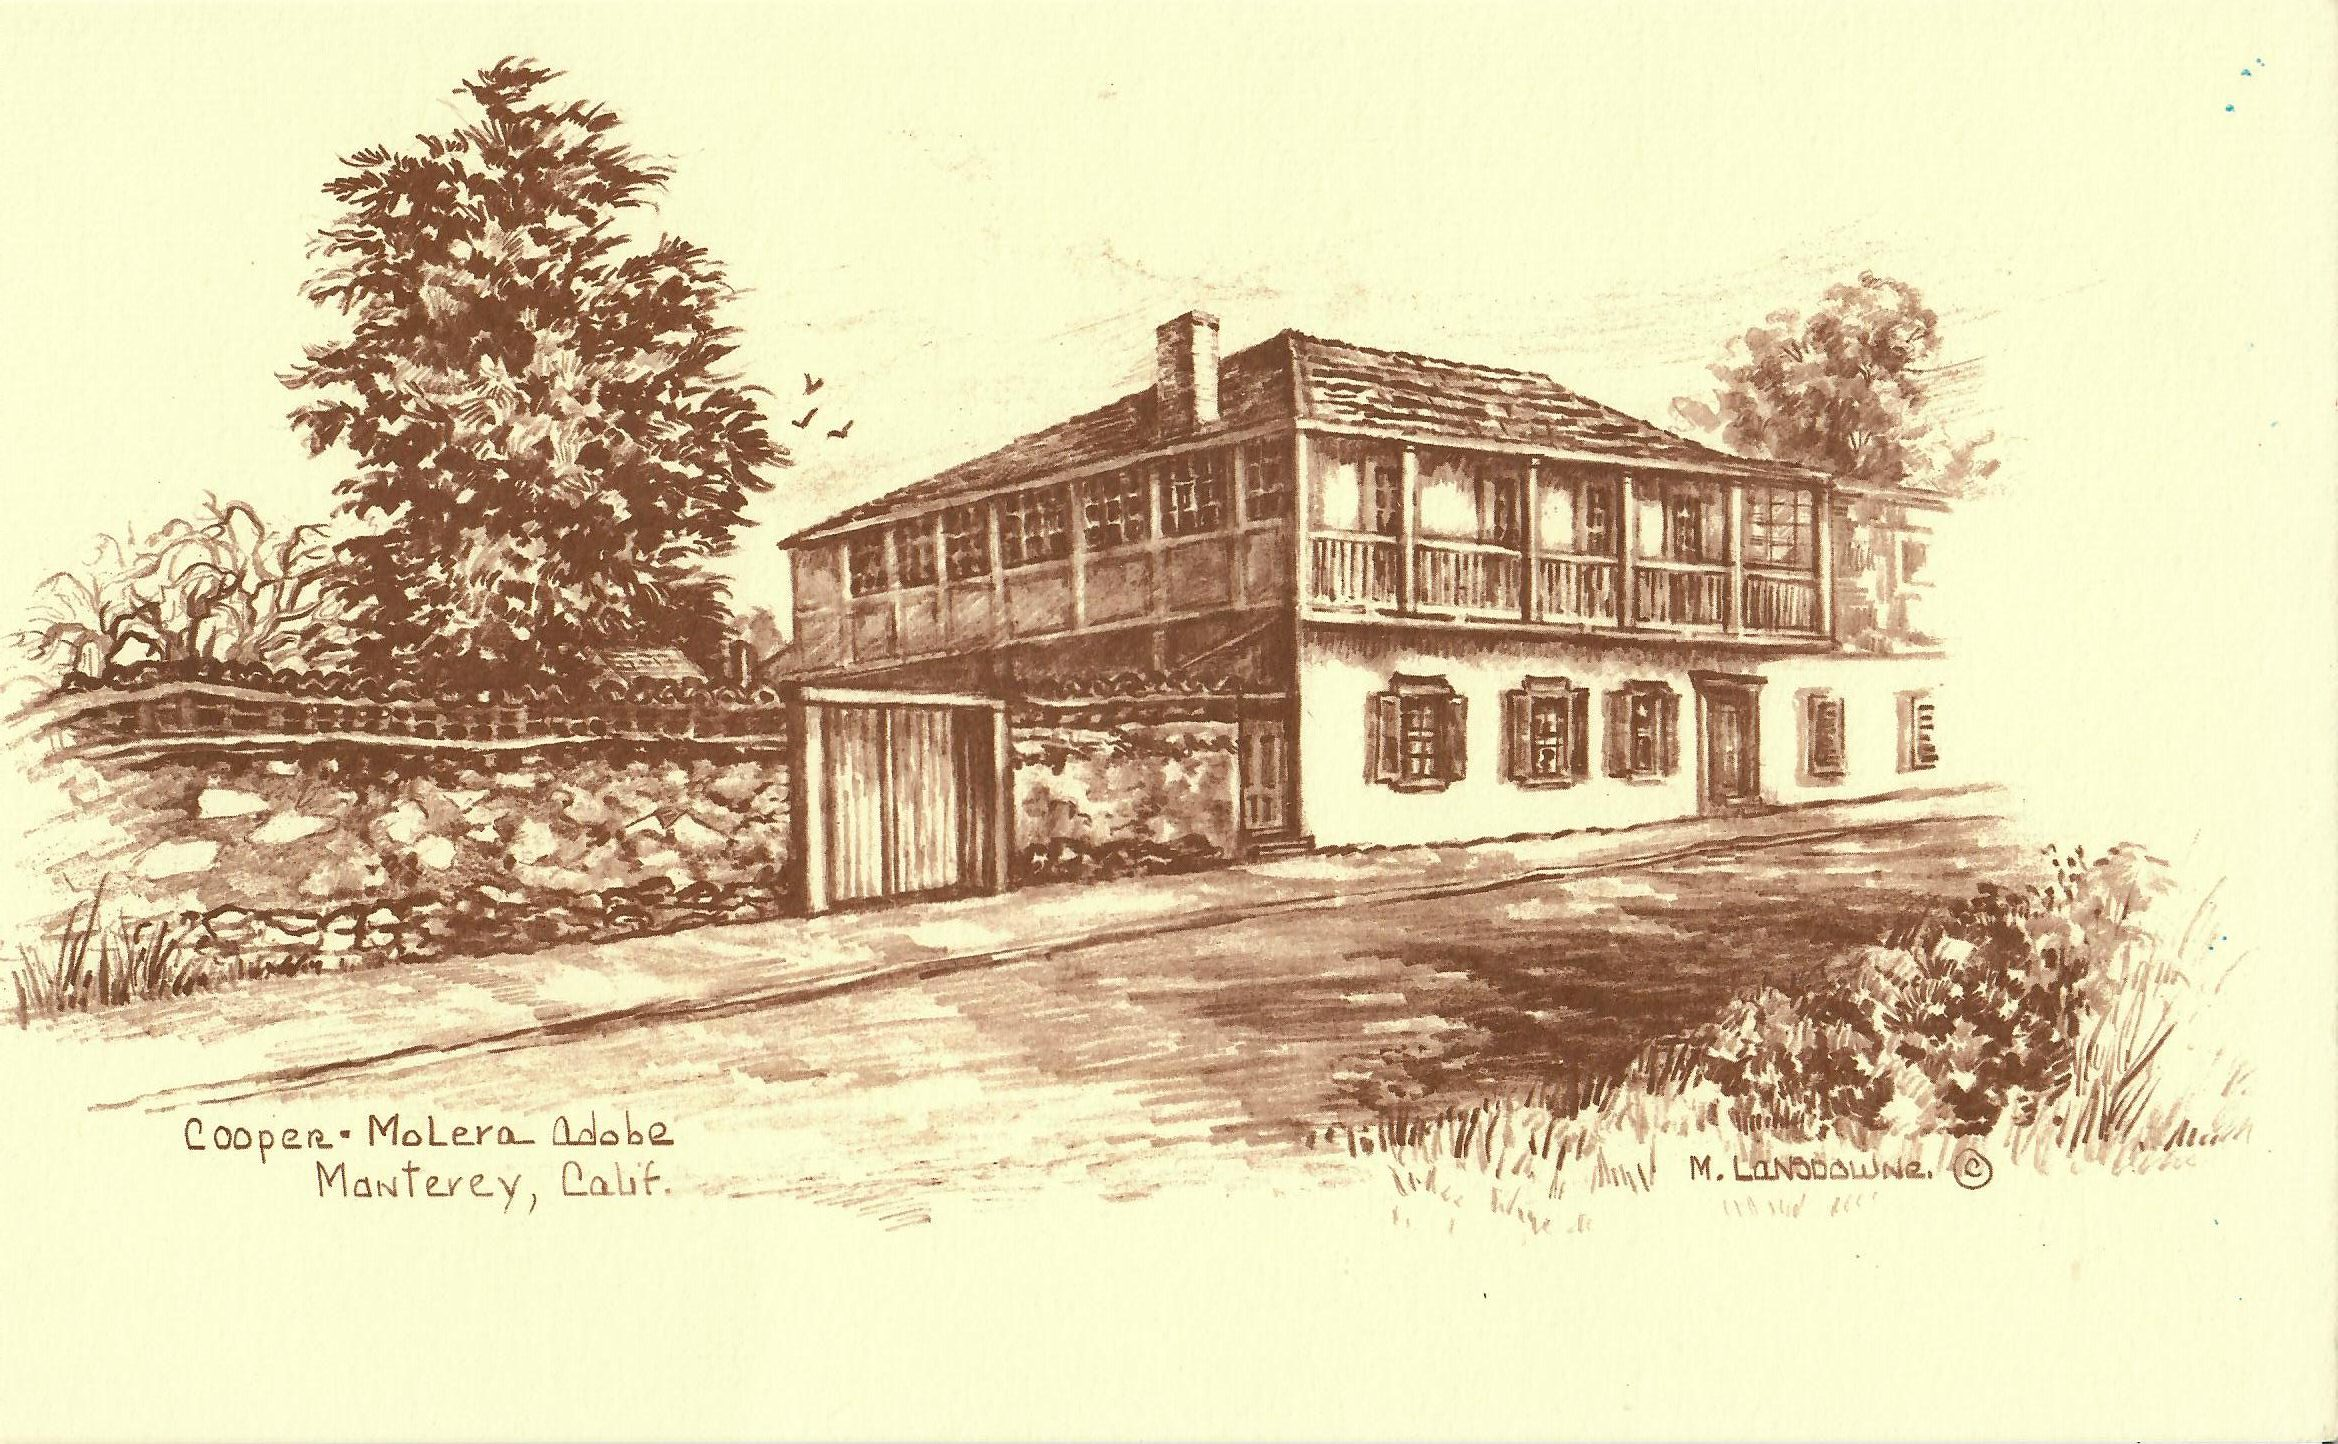 Cooper drawing by M.Lansdowne given to CMA by Harish Joshi